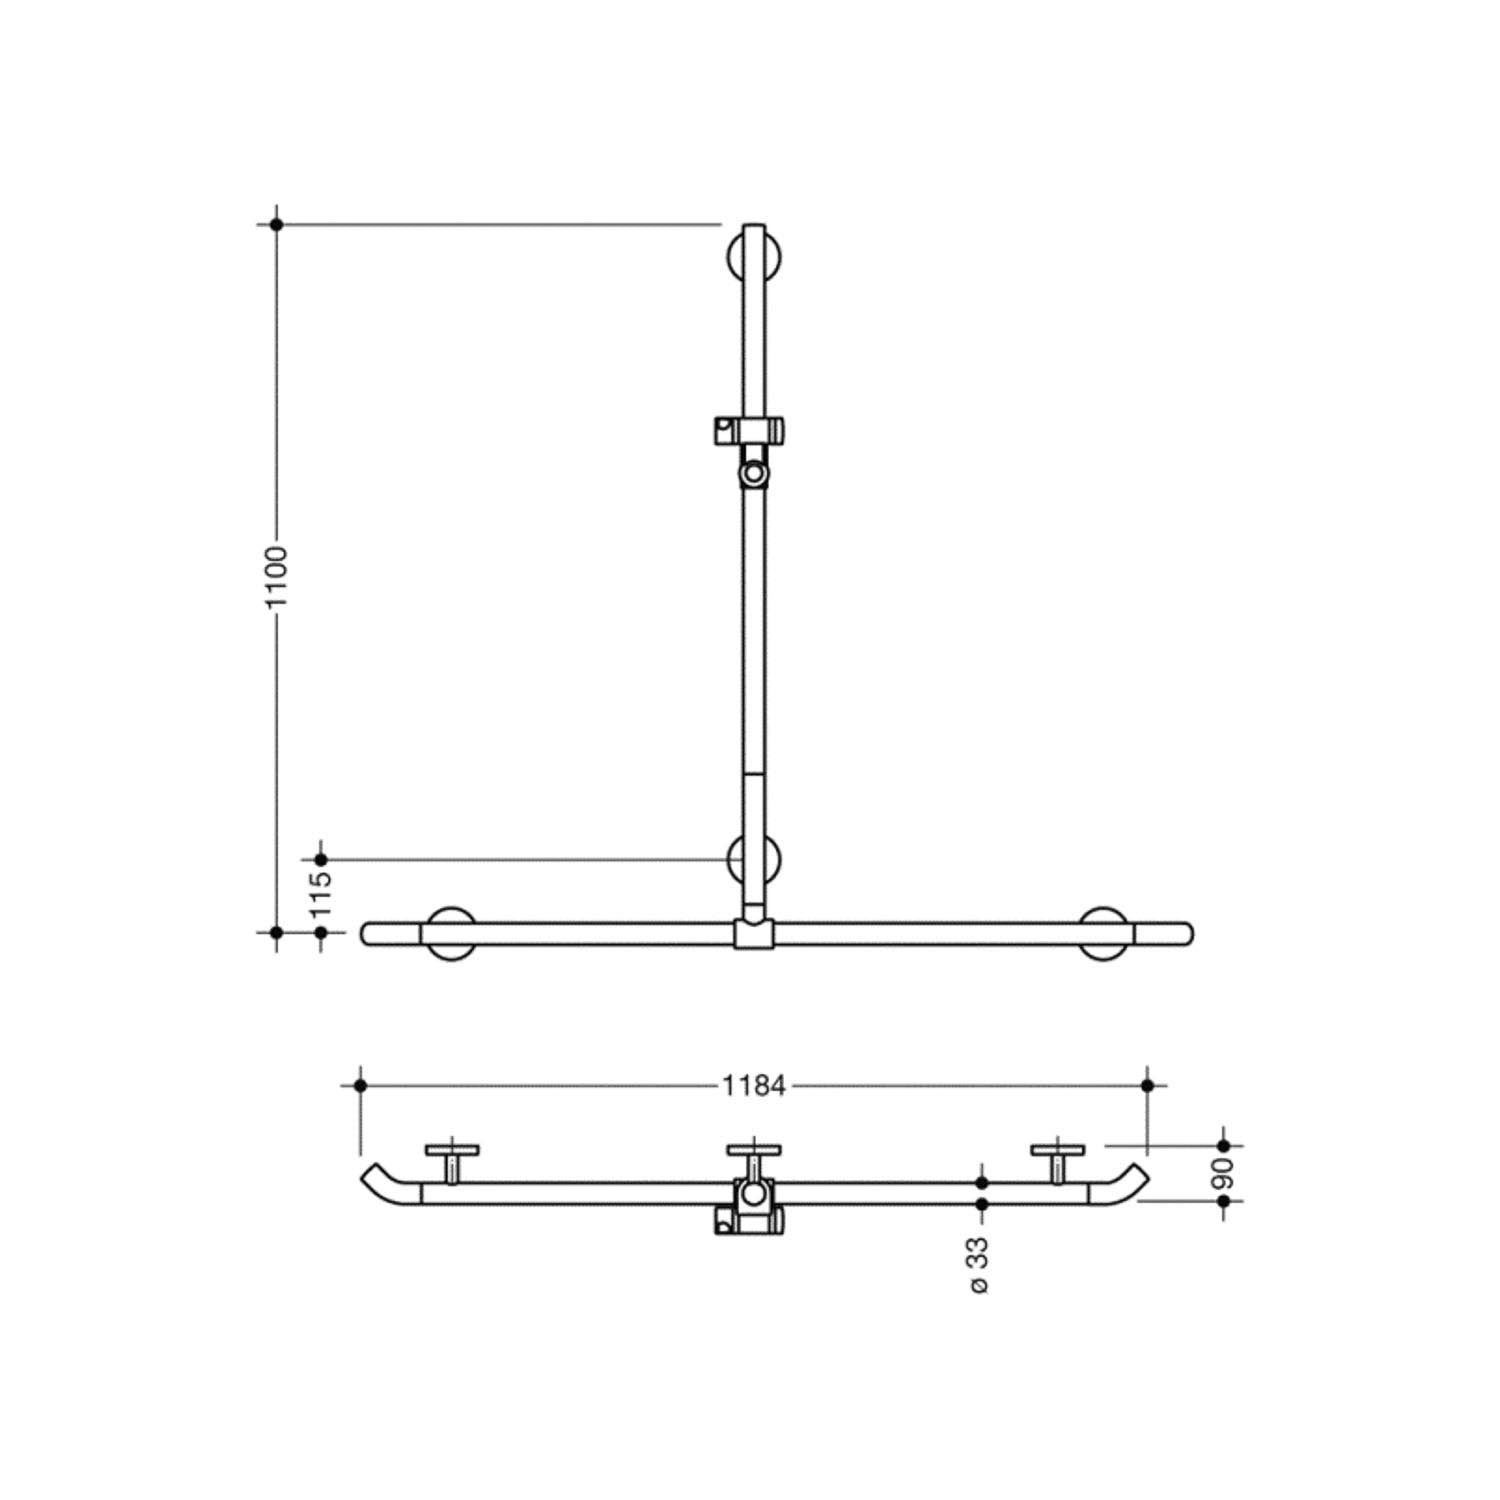 1100x1184mm Circula Supportive T Shaped Shower Rail with a chrome finish dimensional drawing